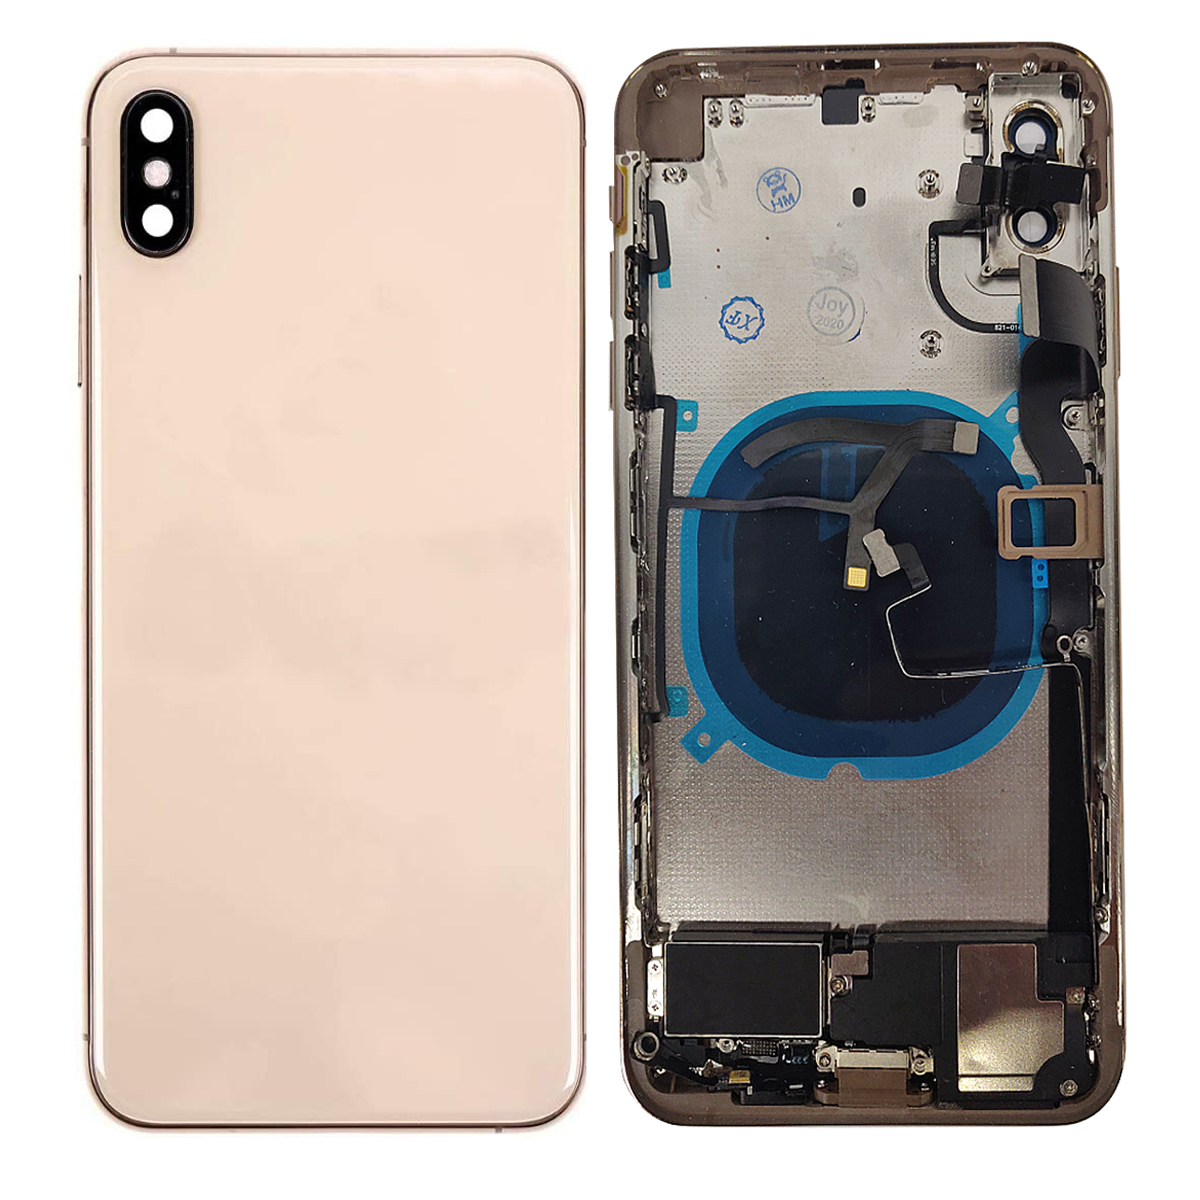 Replacement Back Housing Glass Cover With Parts For Apple iPhone XS Max - Gold